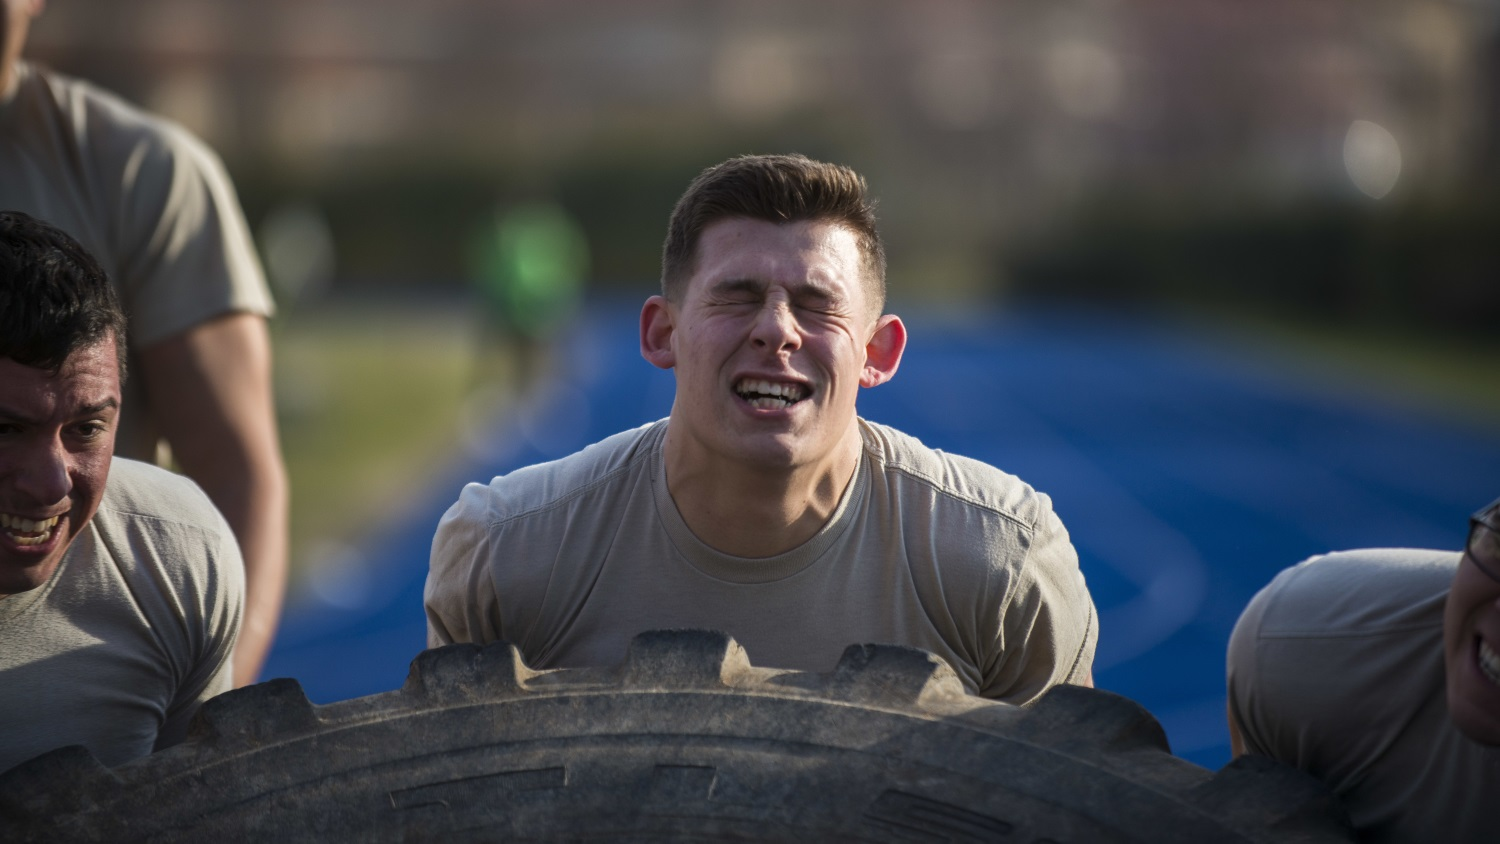 Airman 1st Class Nicholas Castellucci, 724th Air Mobility Squadron member, flips a tire with his teammates during the first Combat Warrior Challenge at Aviano Air Base, March 14, 2017. The four-day competition included obstacles such as a wall climb, tire flip, and kettle bell carry. (Senior Airman Cory W. Bush/Air Force)